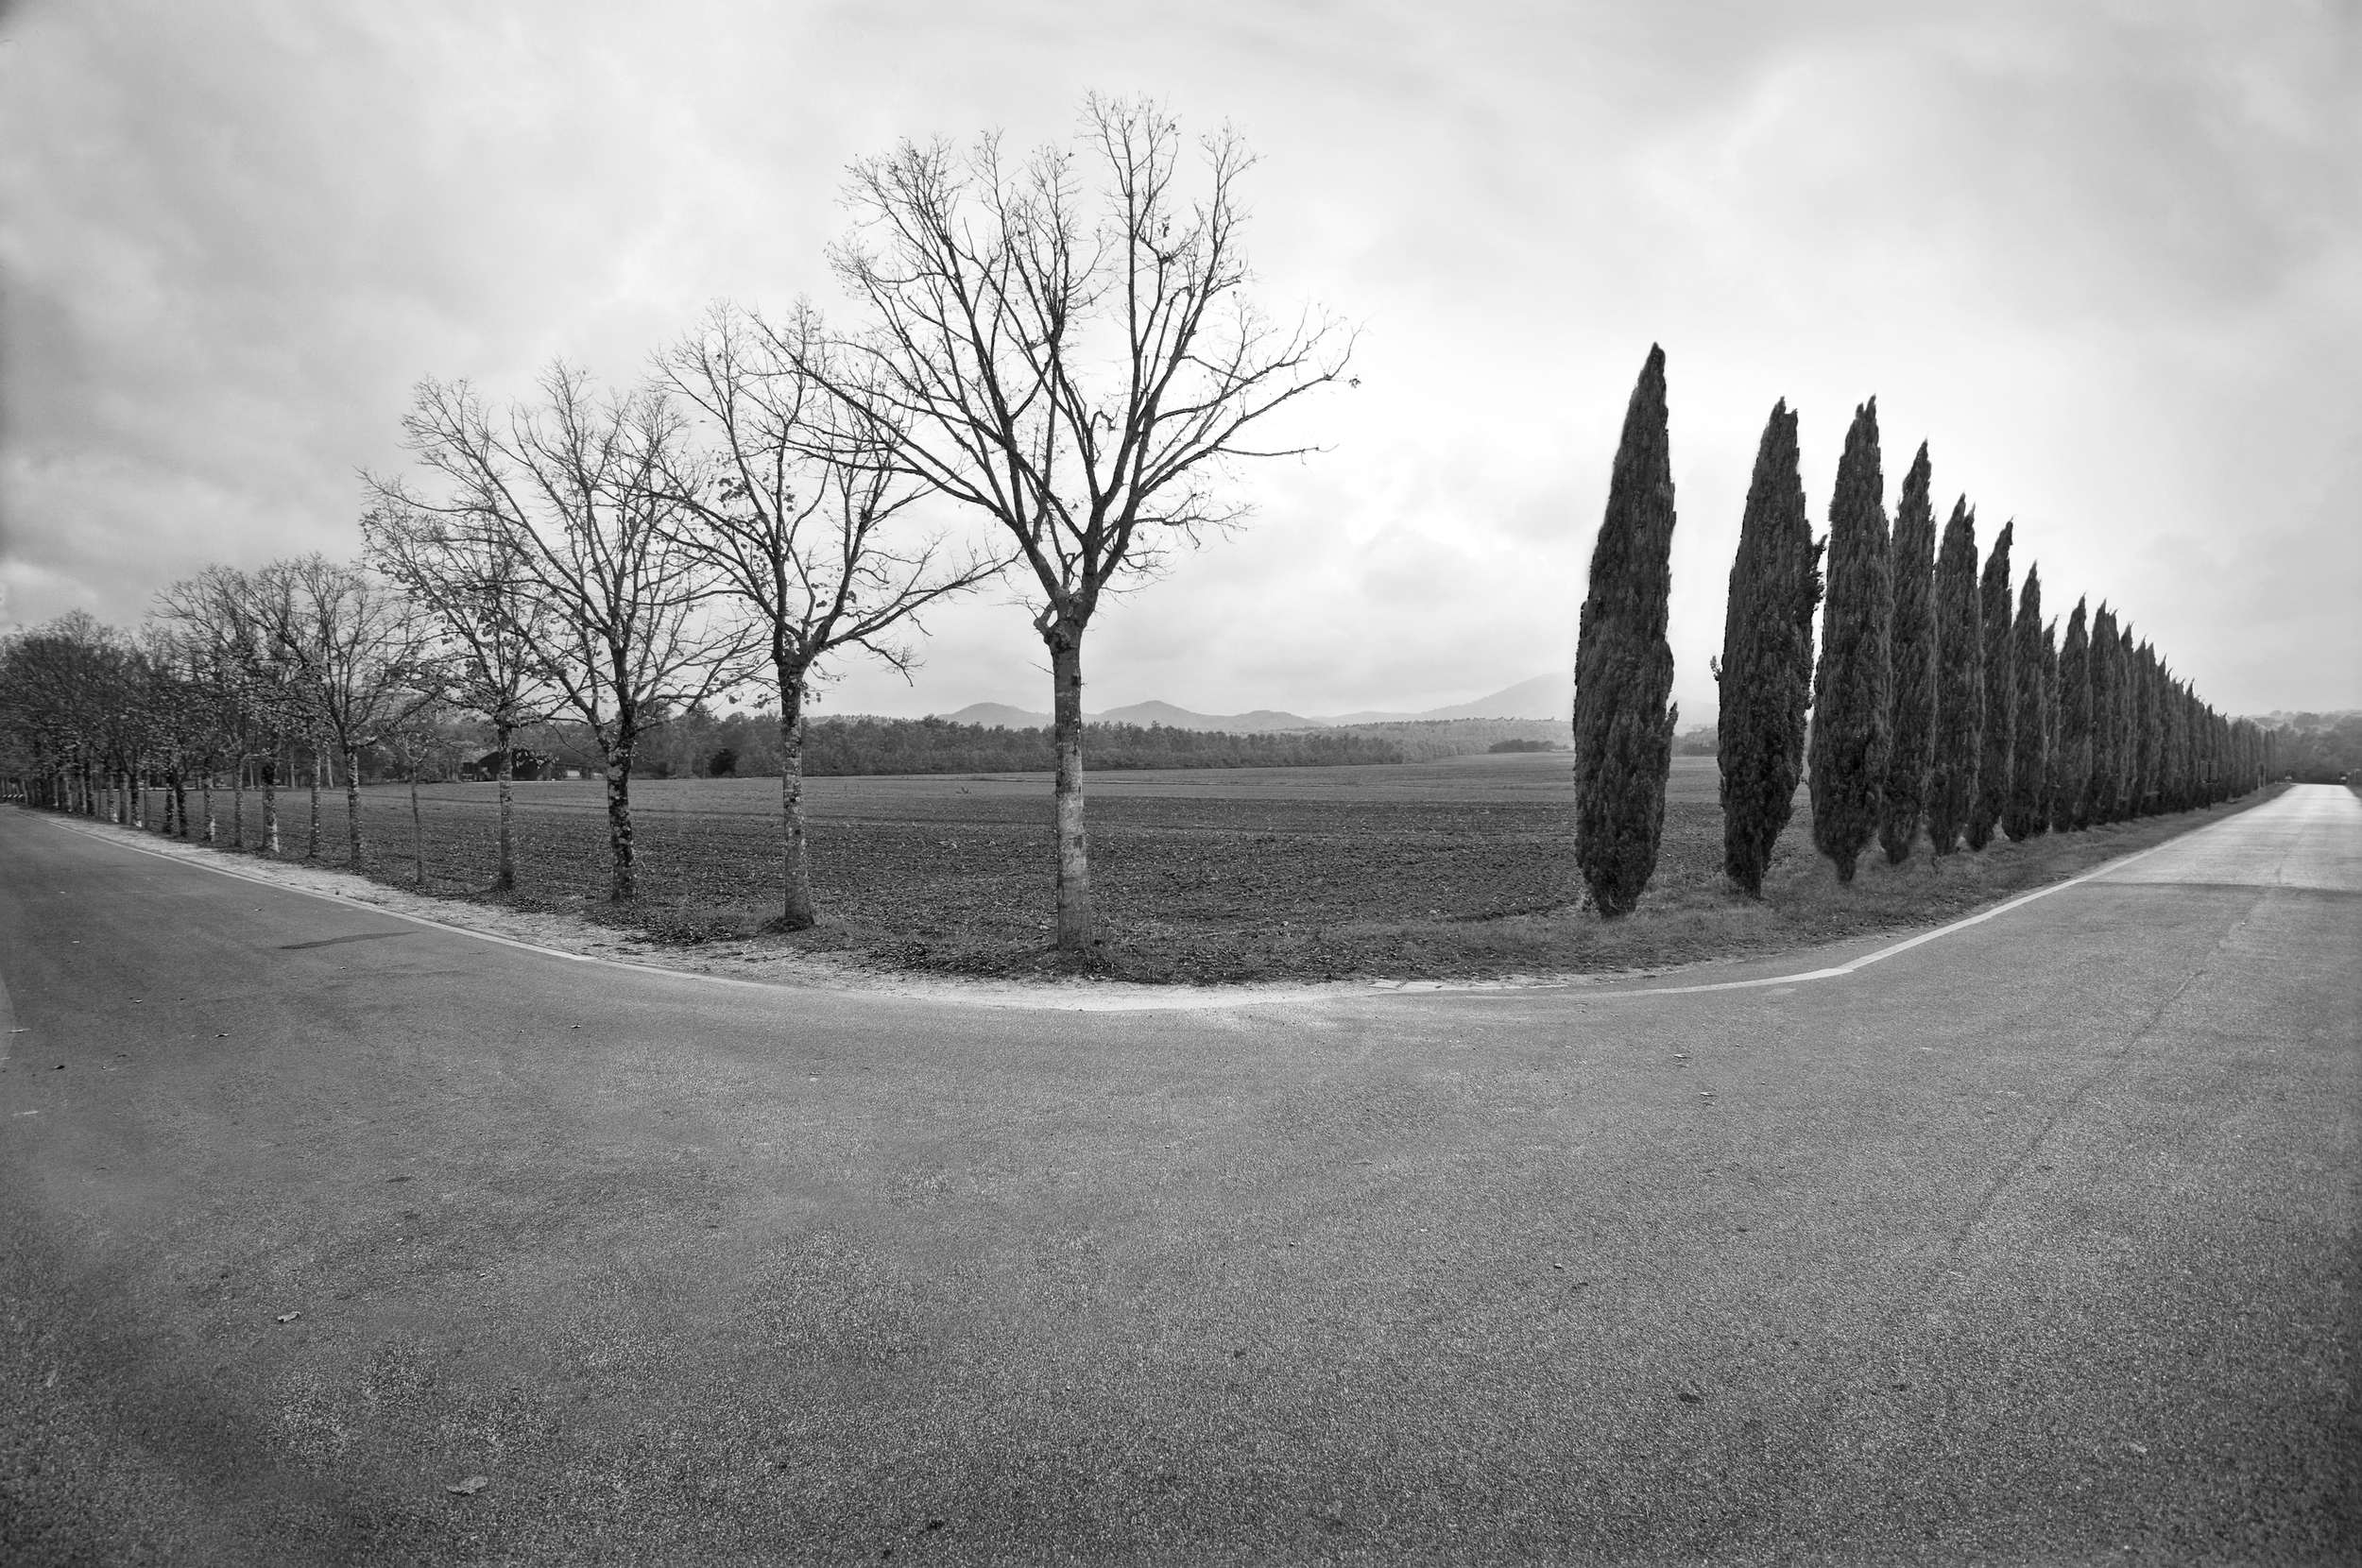 The Road to San Galgano